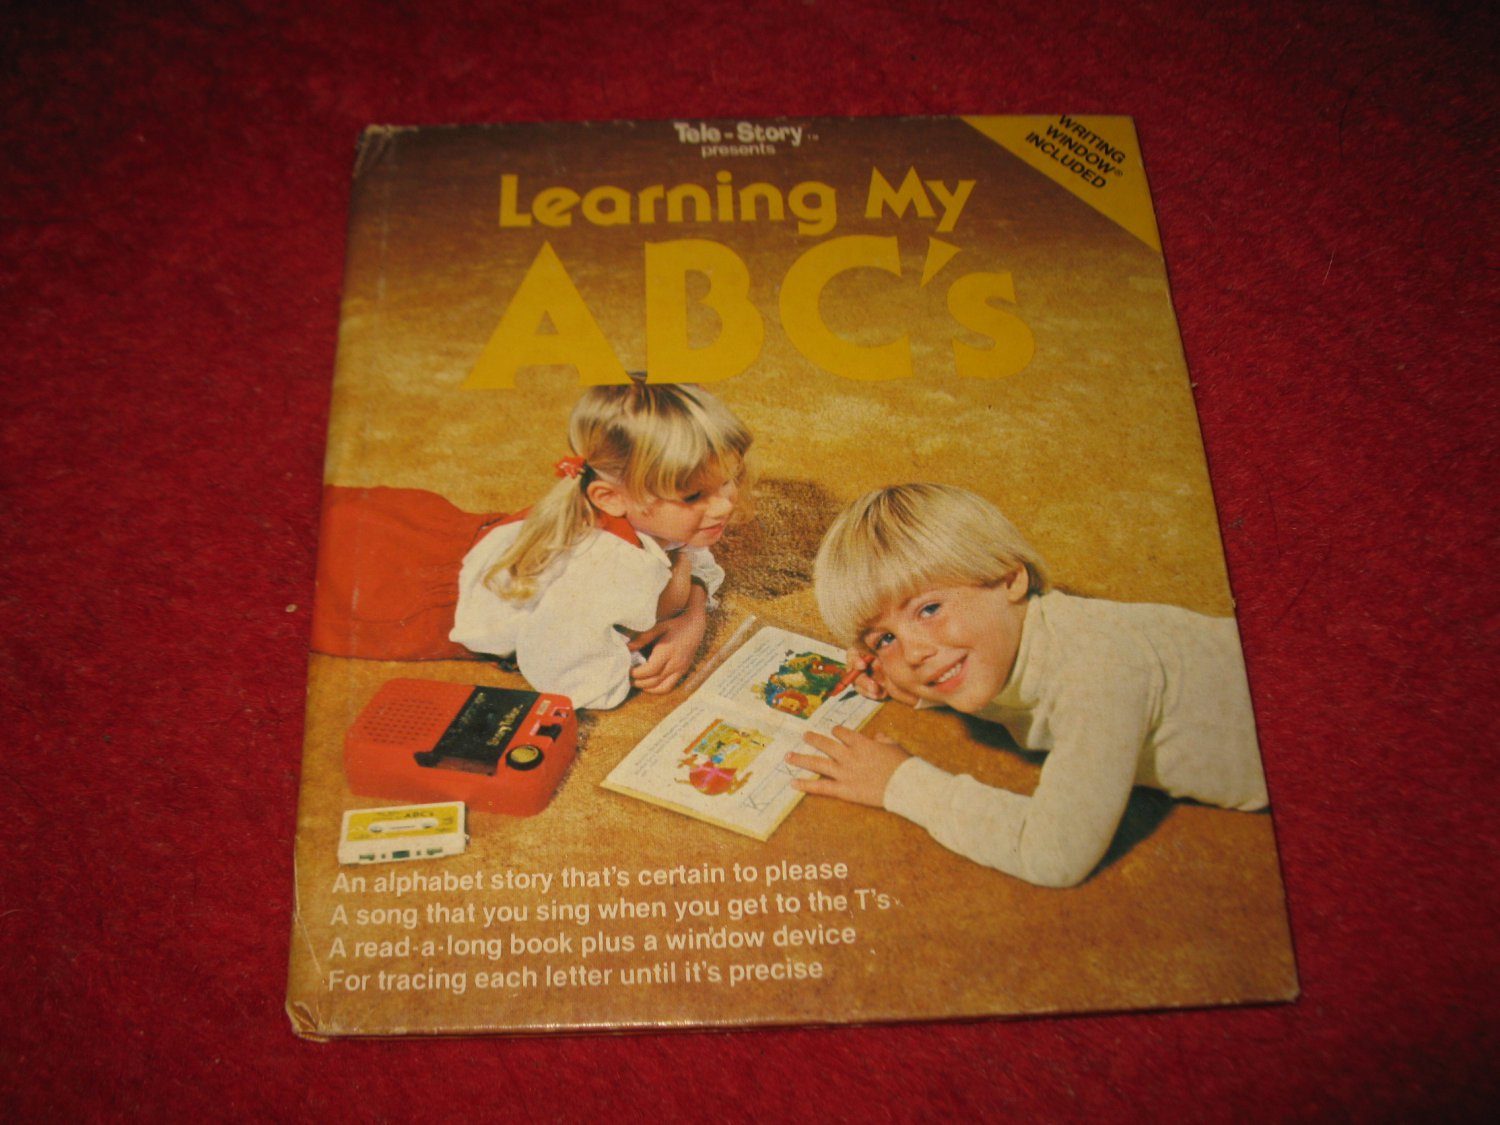 1981 Tele-Story Hardcover book #47-151 : Learning my ABC's